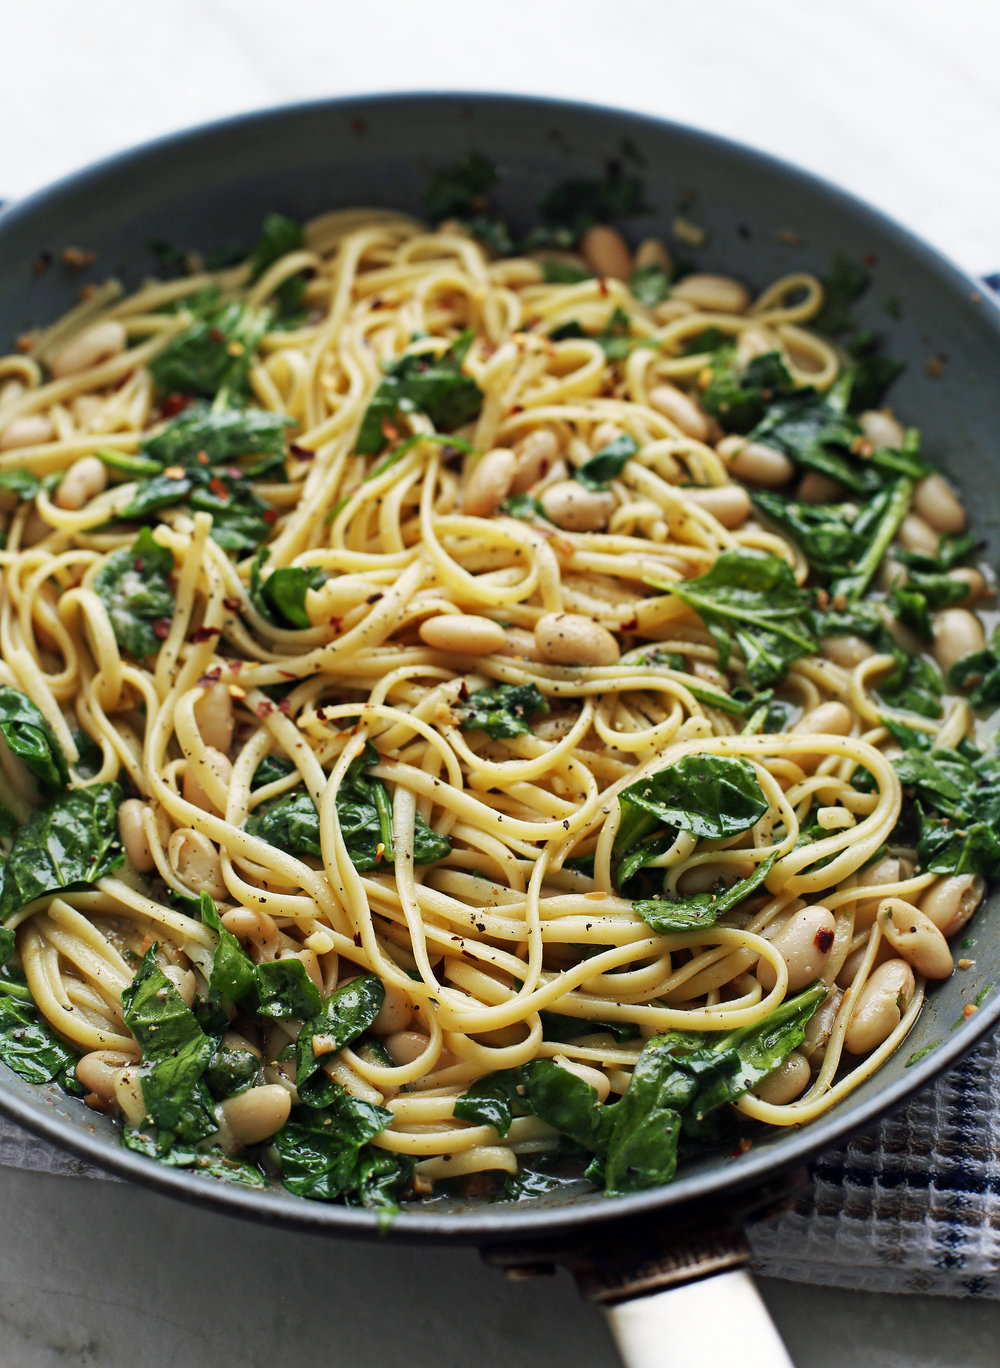 Tossed brown butter linguine pasta with spinach and white beans in a large skillet.